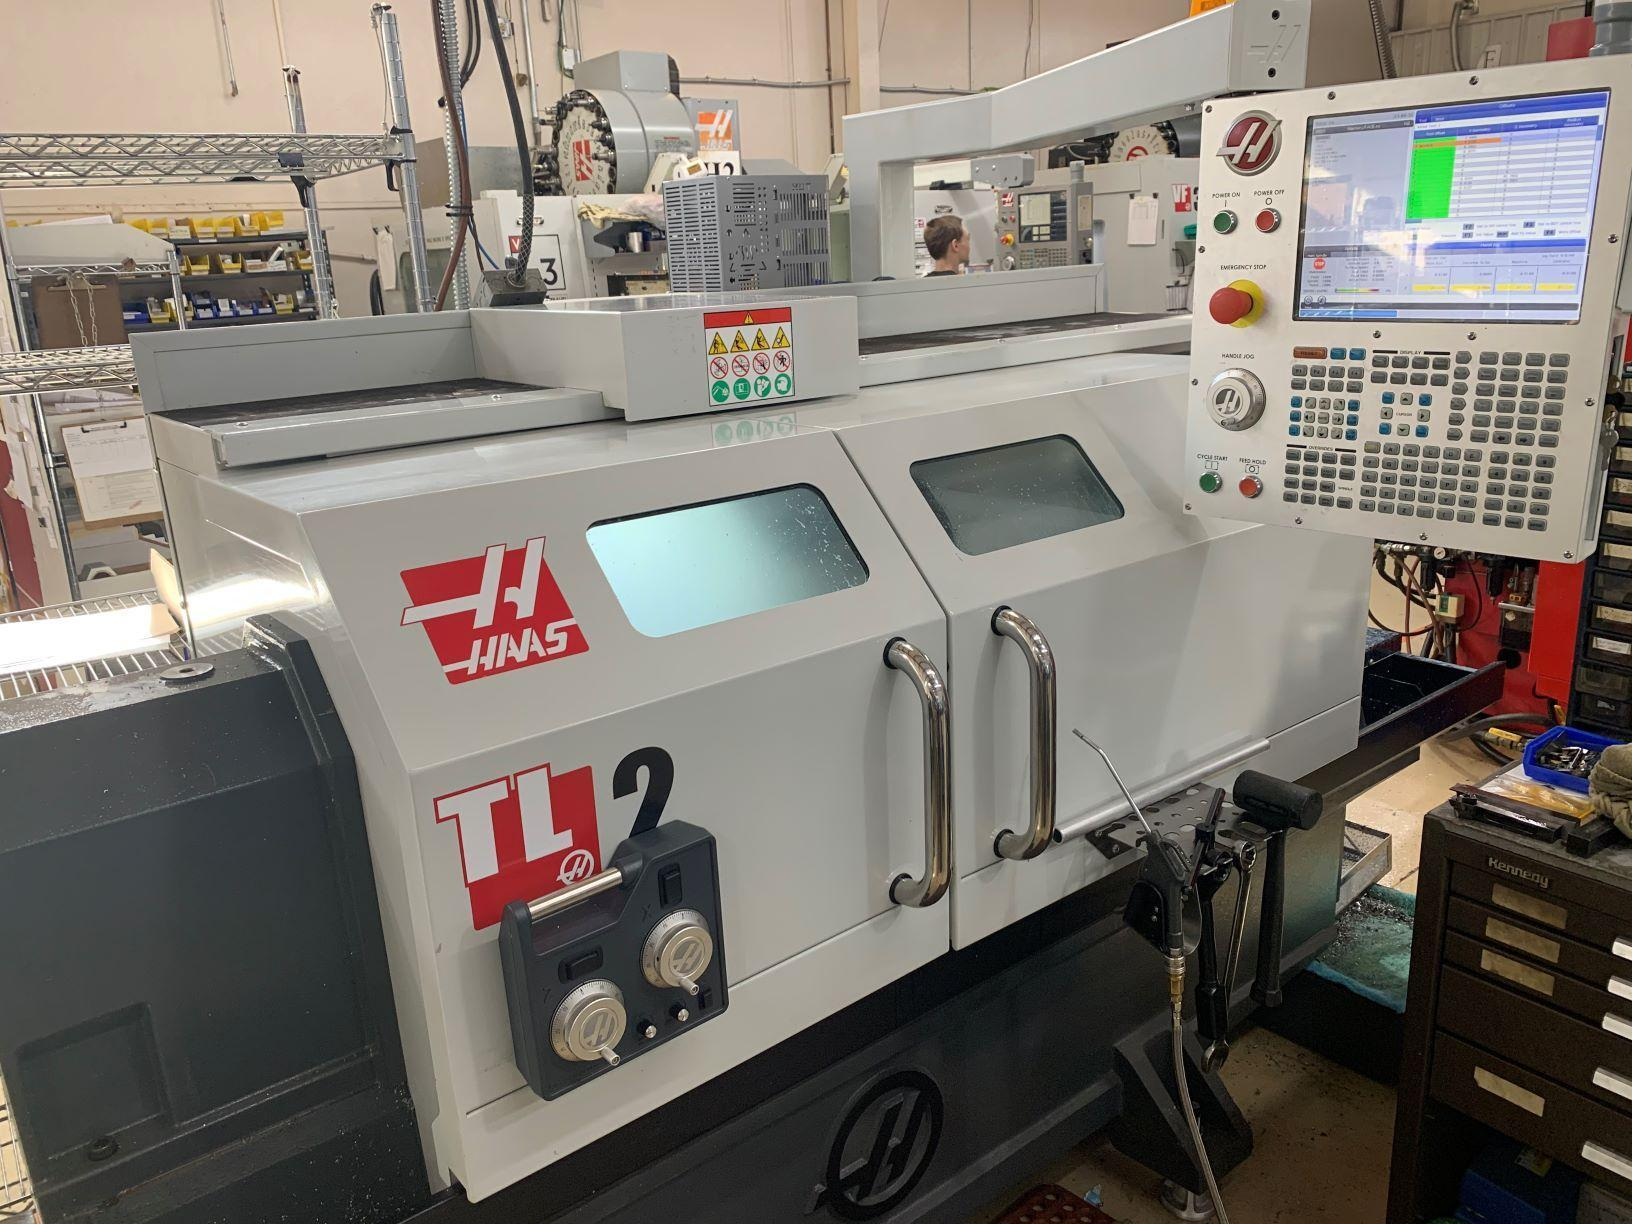 """HAAS2018 Haas TL-2 CNC Lathe - Barely Used! 20"""" Swing, 10"""" Chuck, 48"""" Centers, 3000 RPM, A2-6, Coolant, Tailstock, 4 Station Auto Tool Turret"""